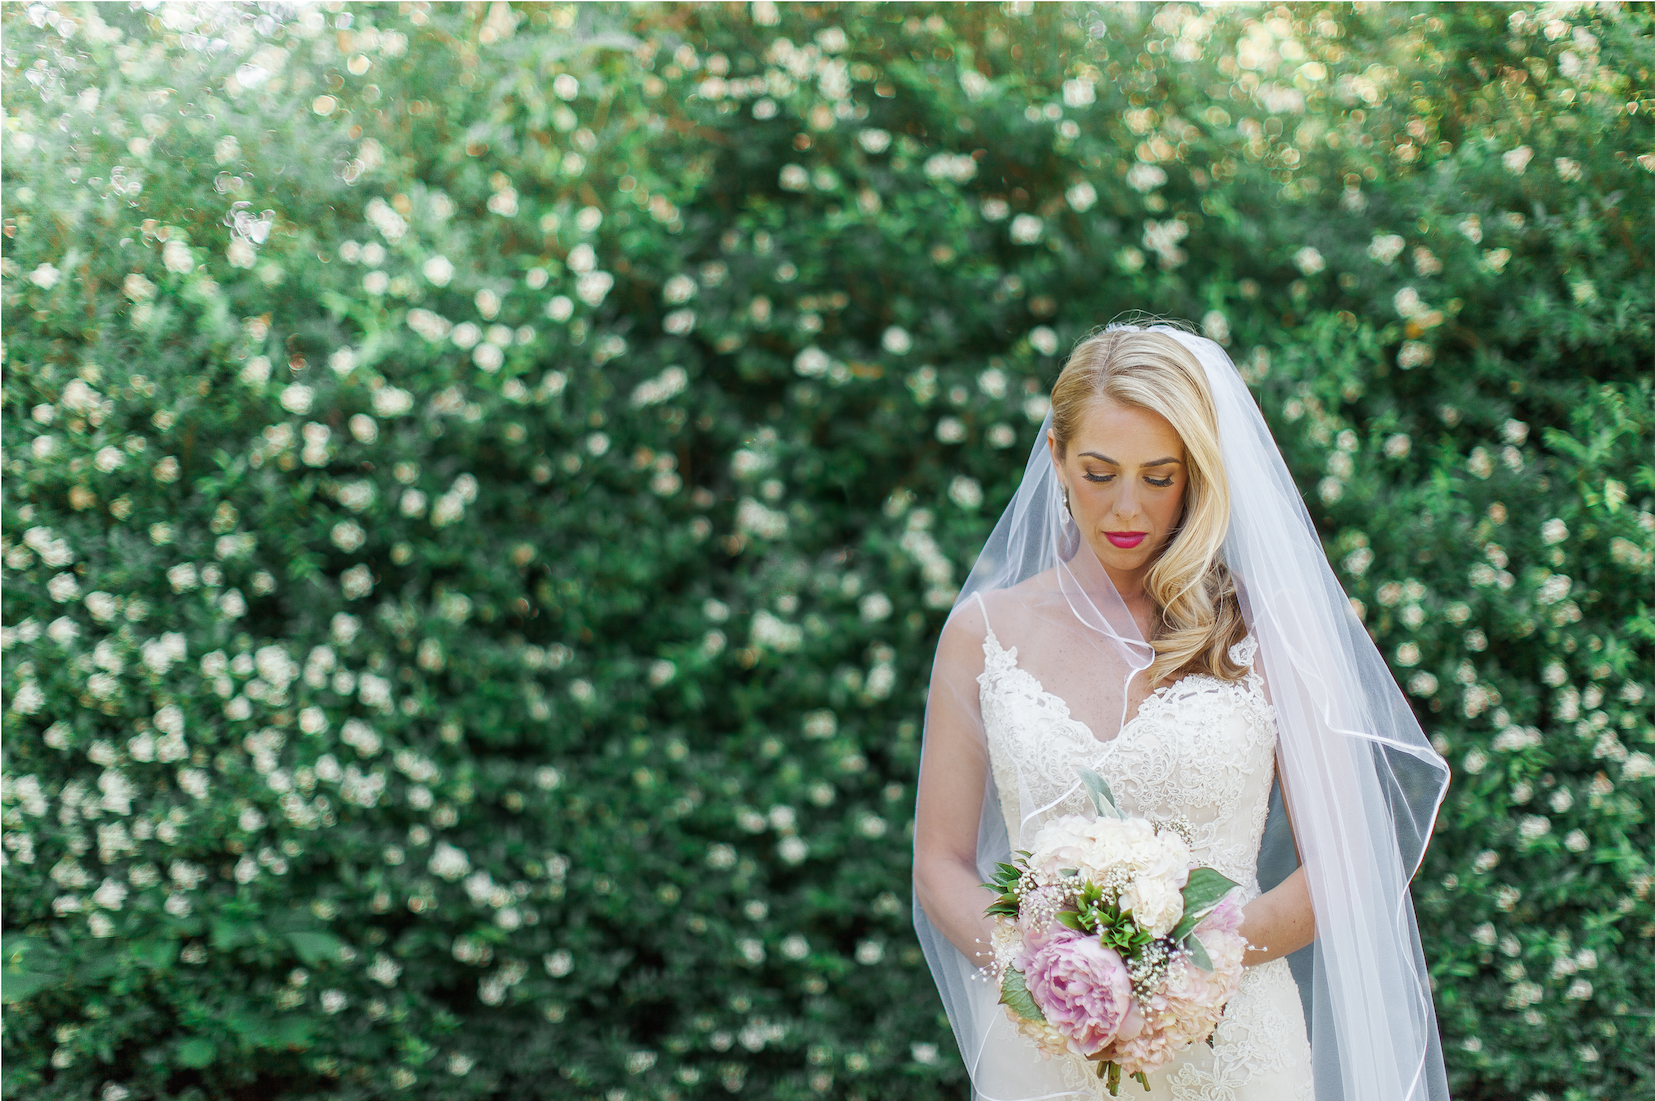 Seattle wedding photographer, fine art, tiffany burke photography, bride pose.pn